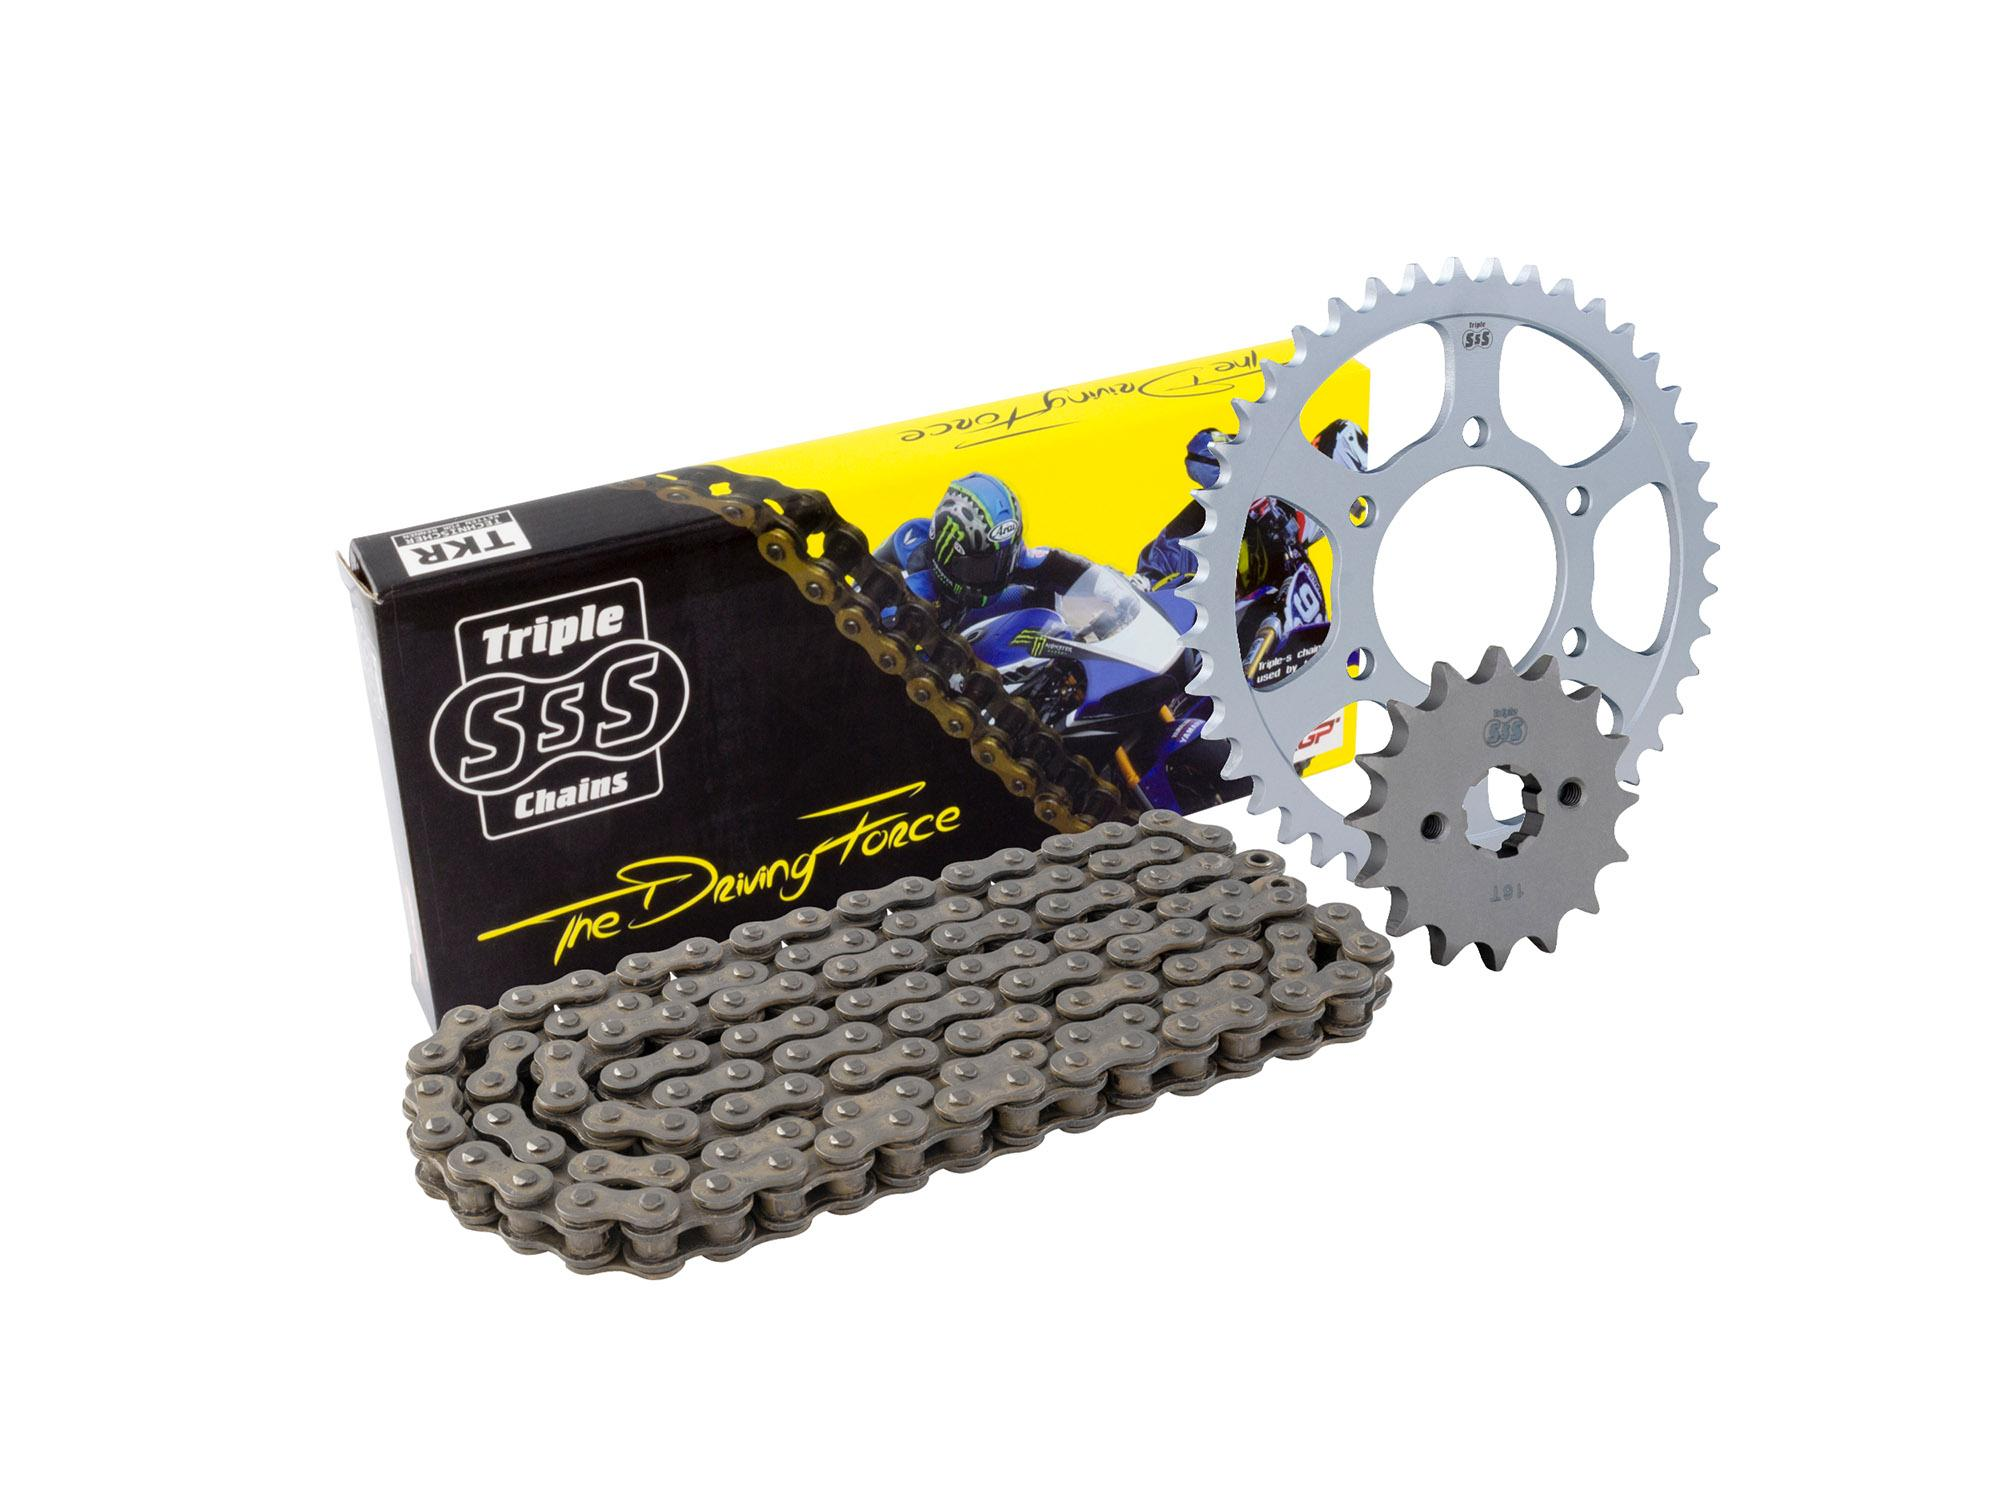 Ducati 800 Monster ie / Dark 03-04 Chain & Sprocket Kit: 15T Front, 42T Rear, HD O-Ring Black Chain 520H 102Link